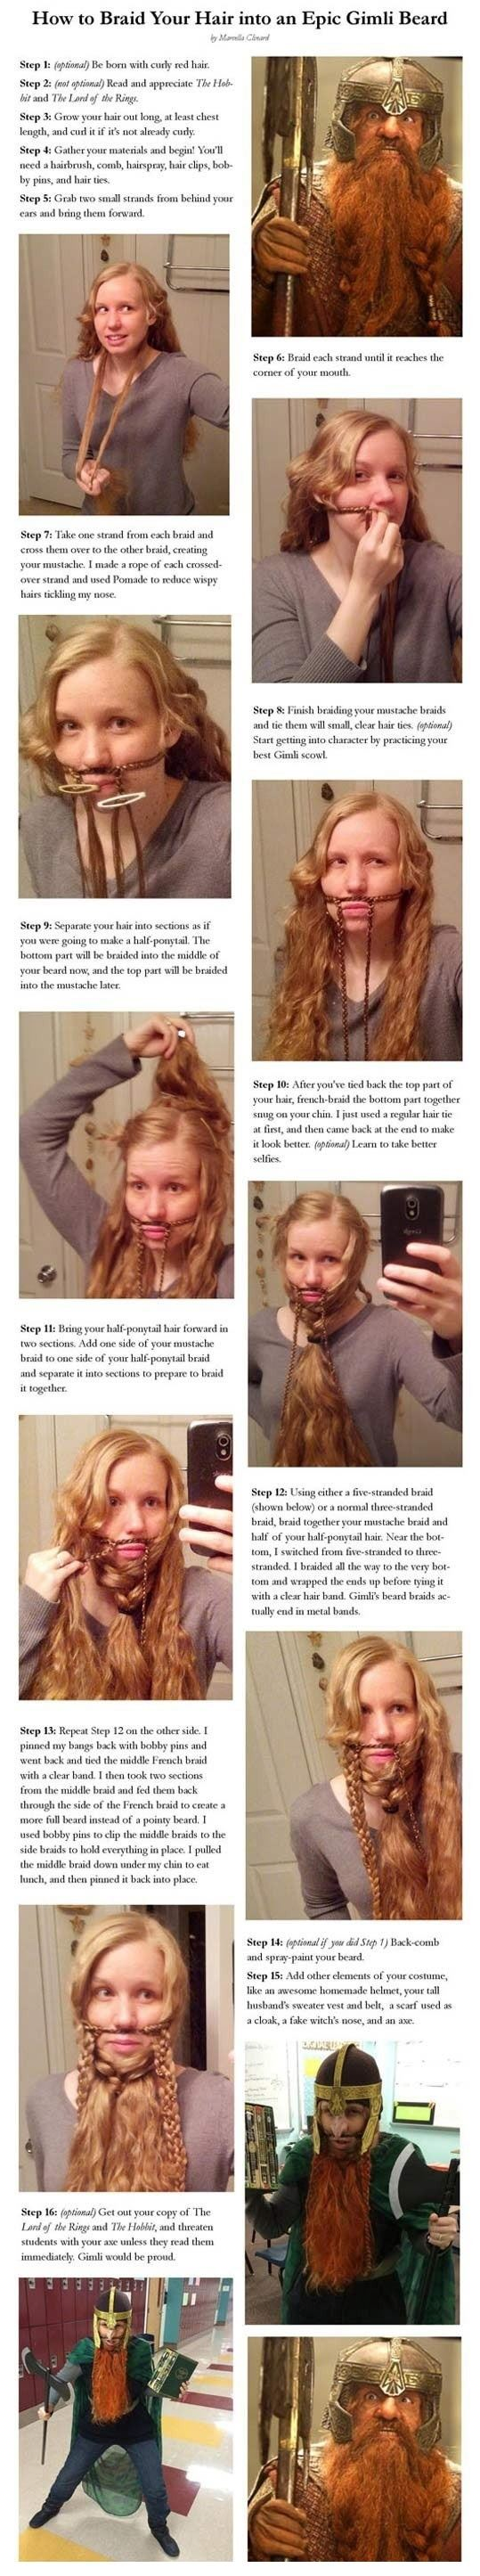 How To Easily Turn Your Hair Into An Epic Beard